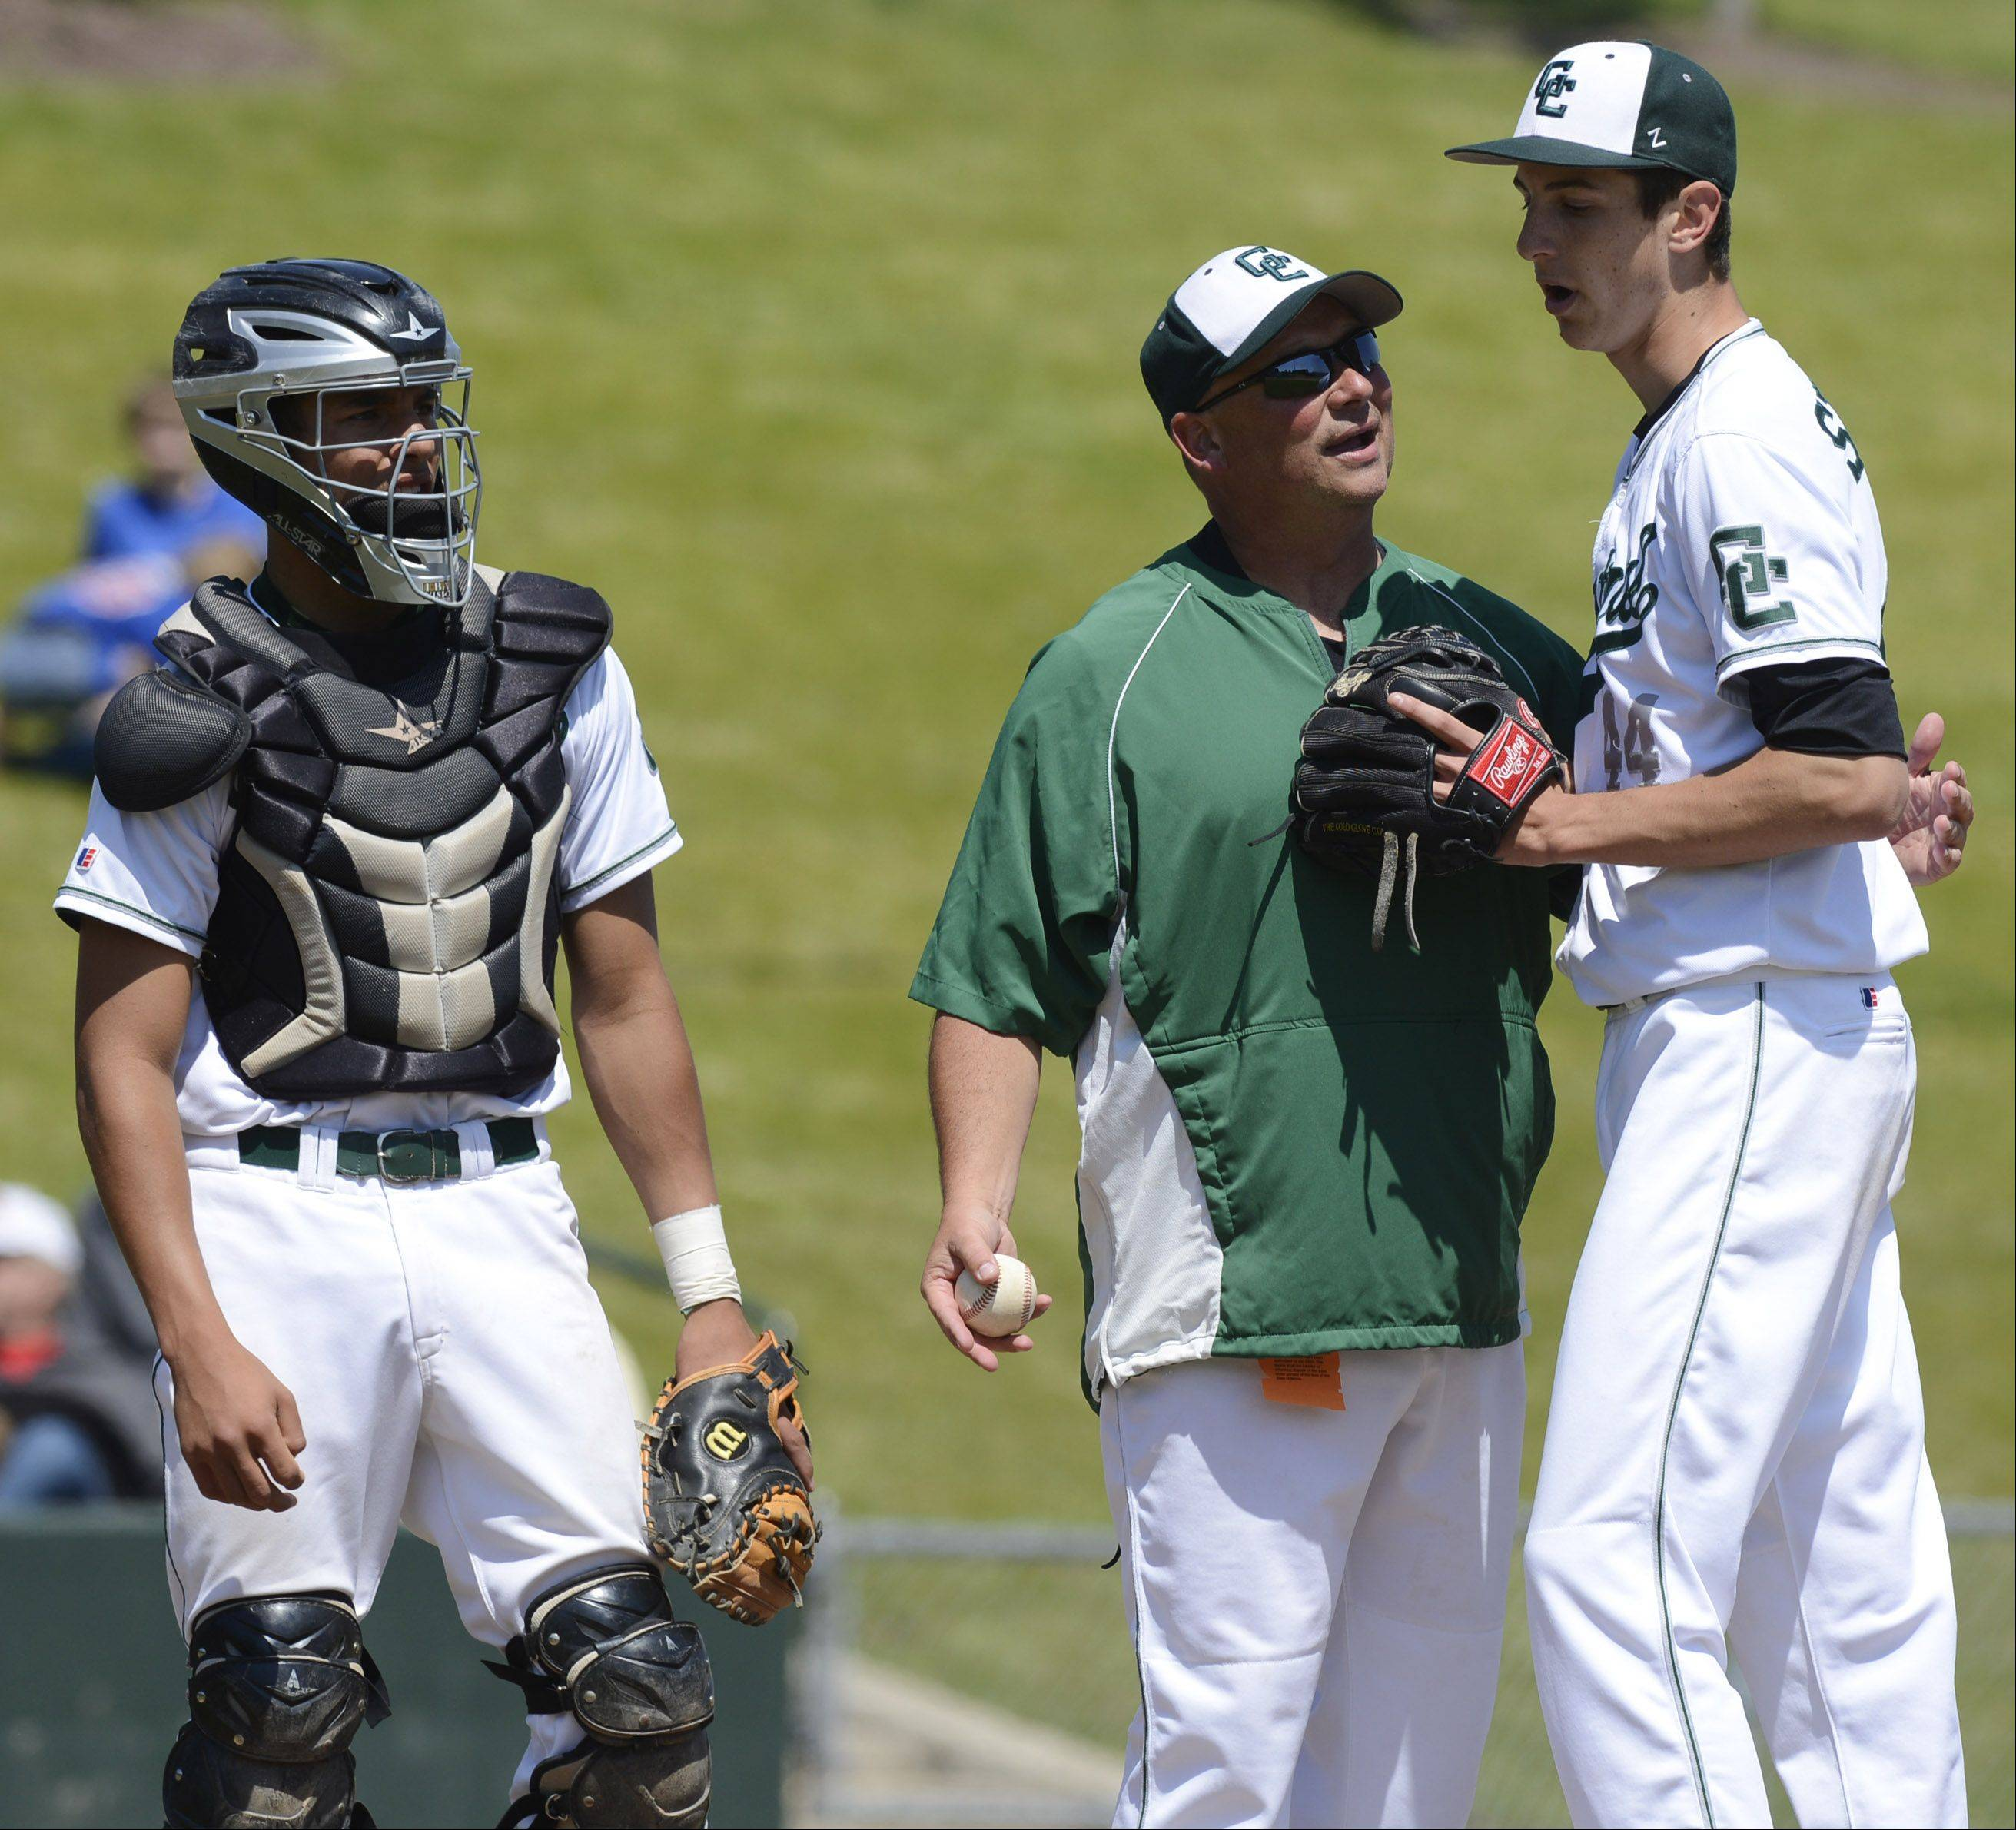 Grayslake Central coach Troy Whalen replaces starting pitcher Jack Spicer as catcher Freddie Landers stands by during the Class 3A state baseball tournament at Silver Cross Field in Joliet on Friday.